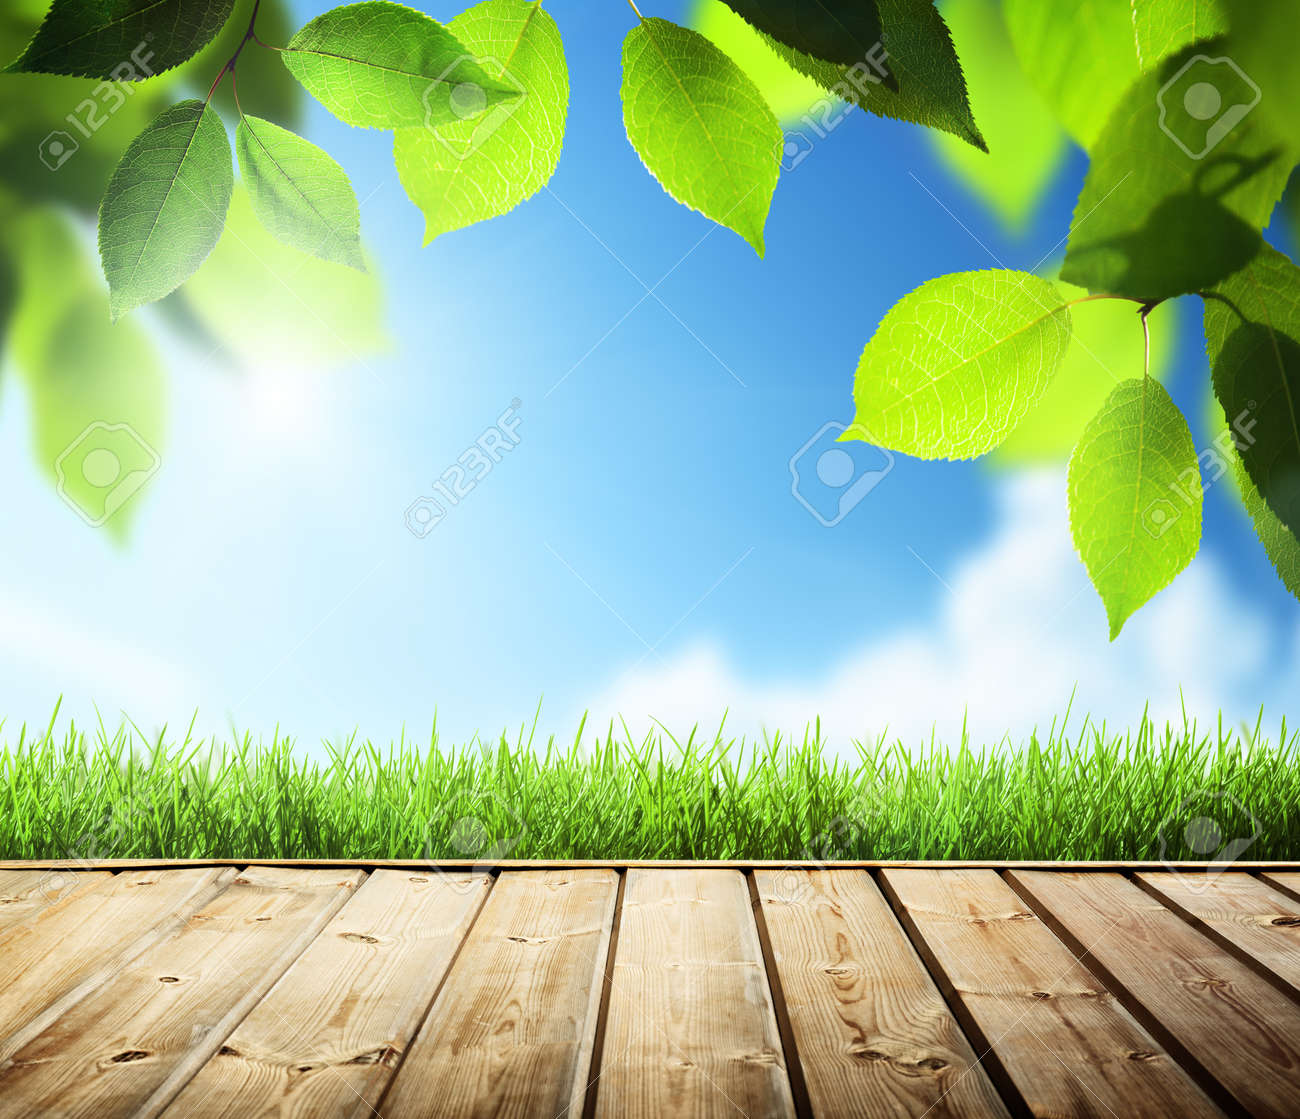 summer background with wooden surface Stock Photo - 20434161